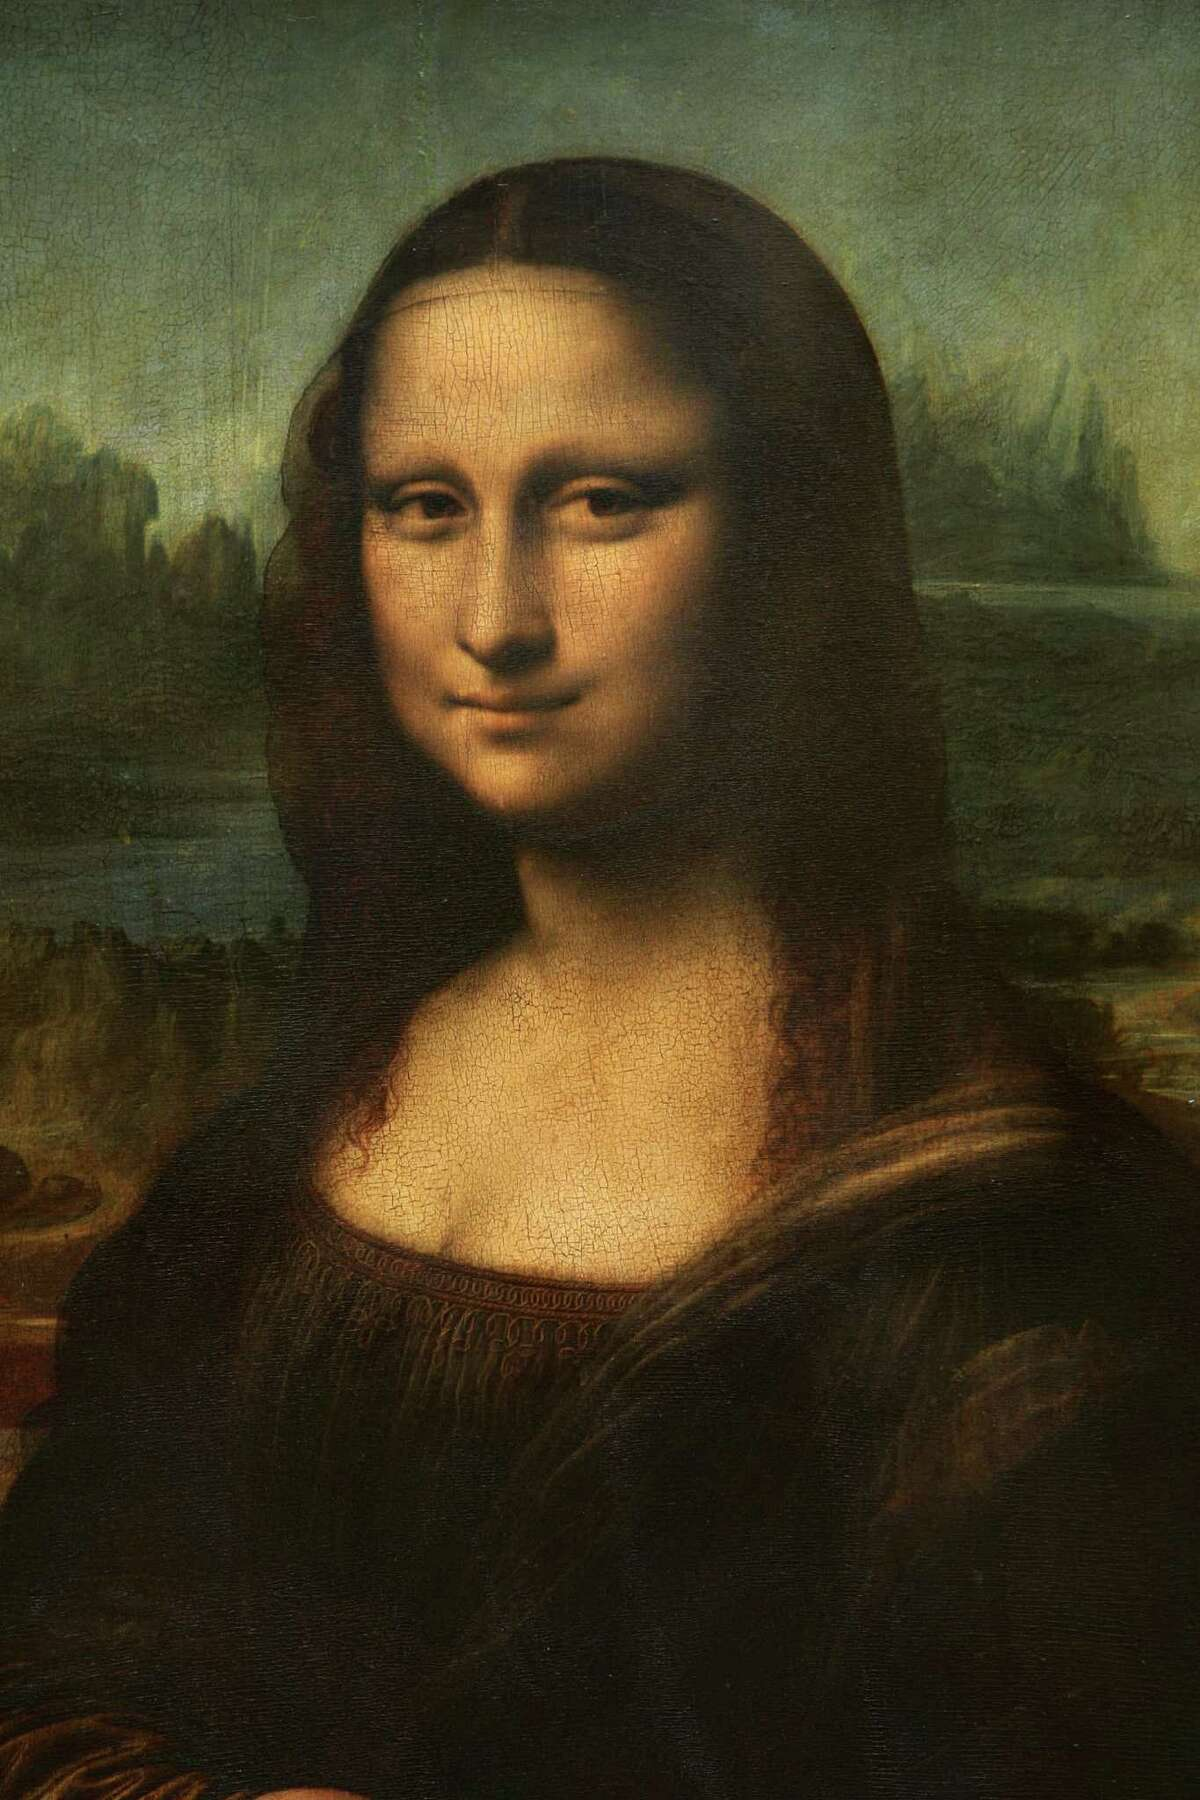 Mystery Mona Lisa's mysterious smile in da Vinci's painting has invited speculation for centuries.